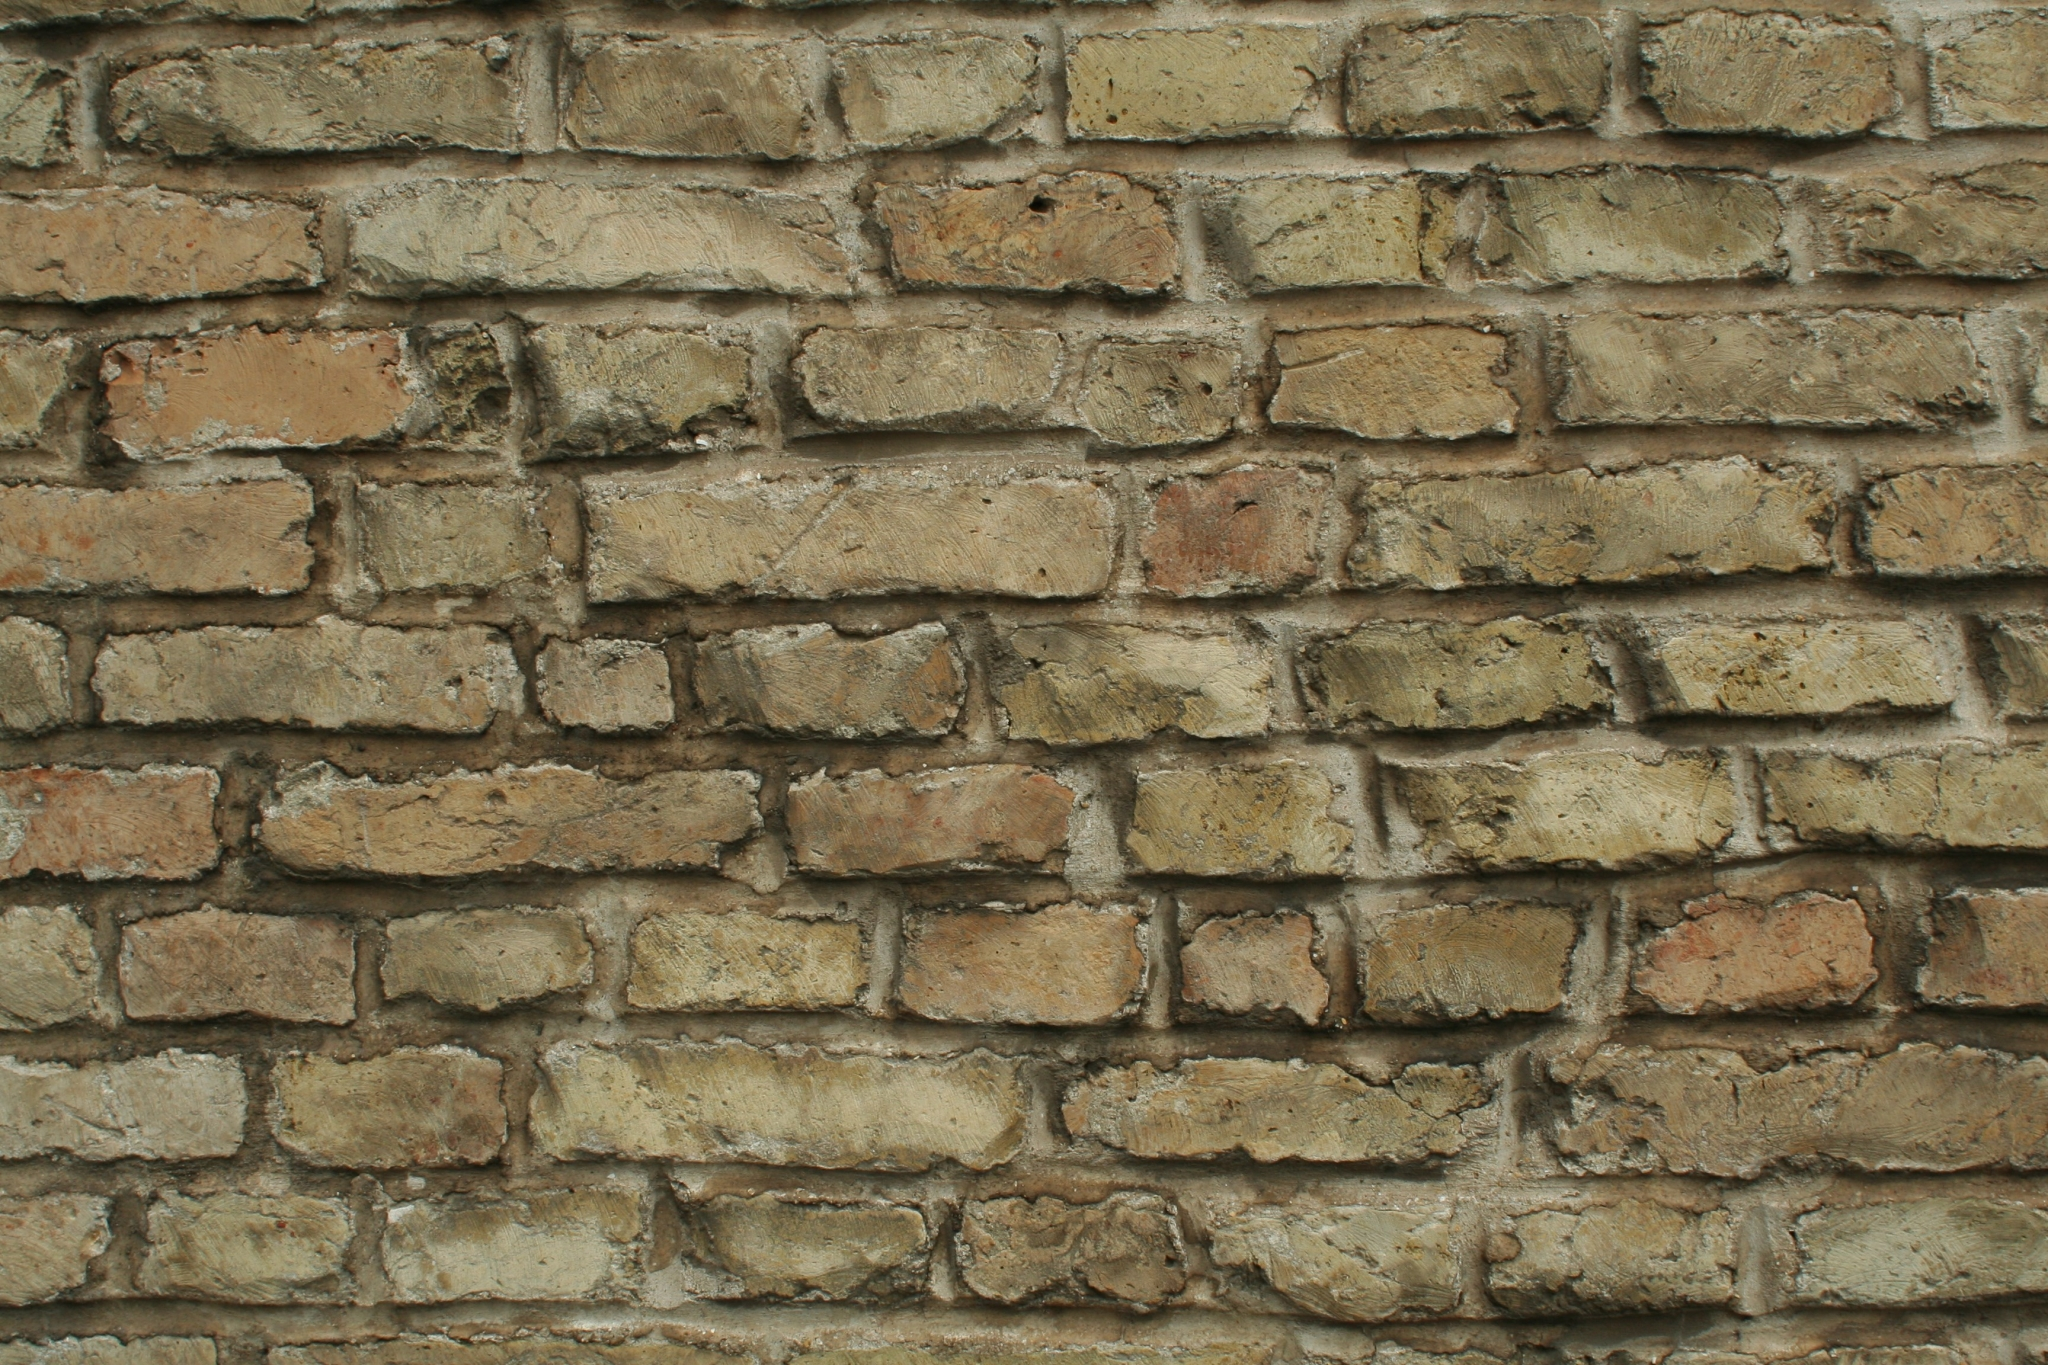 brick-hd-1080p-windows-wallpaper-wp3803425